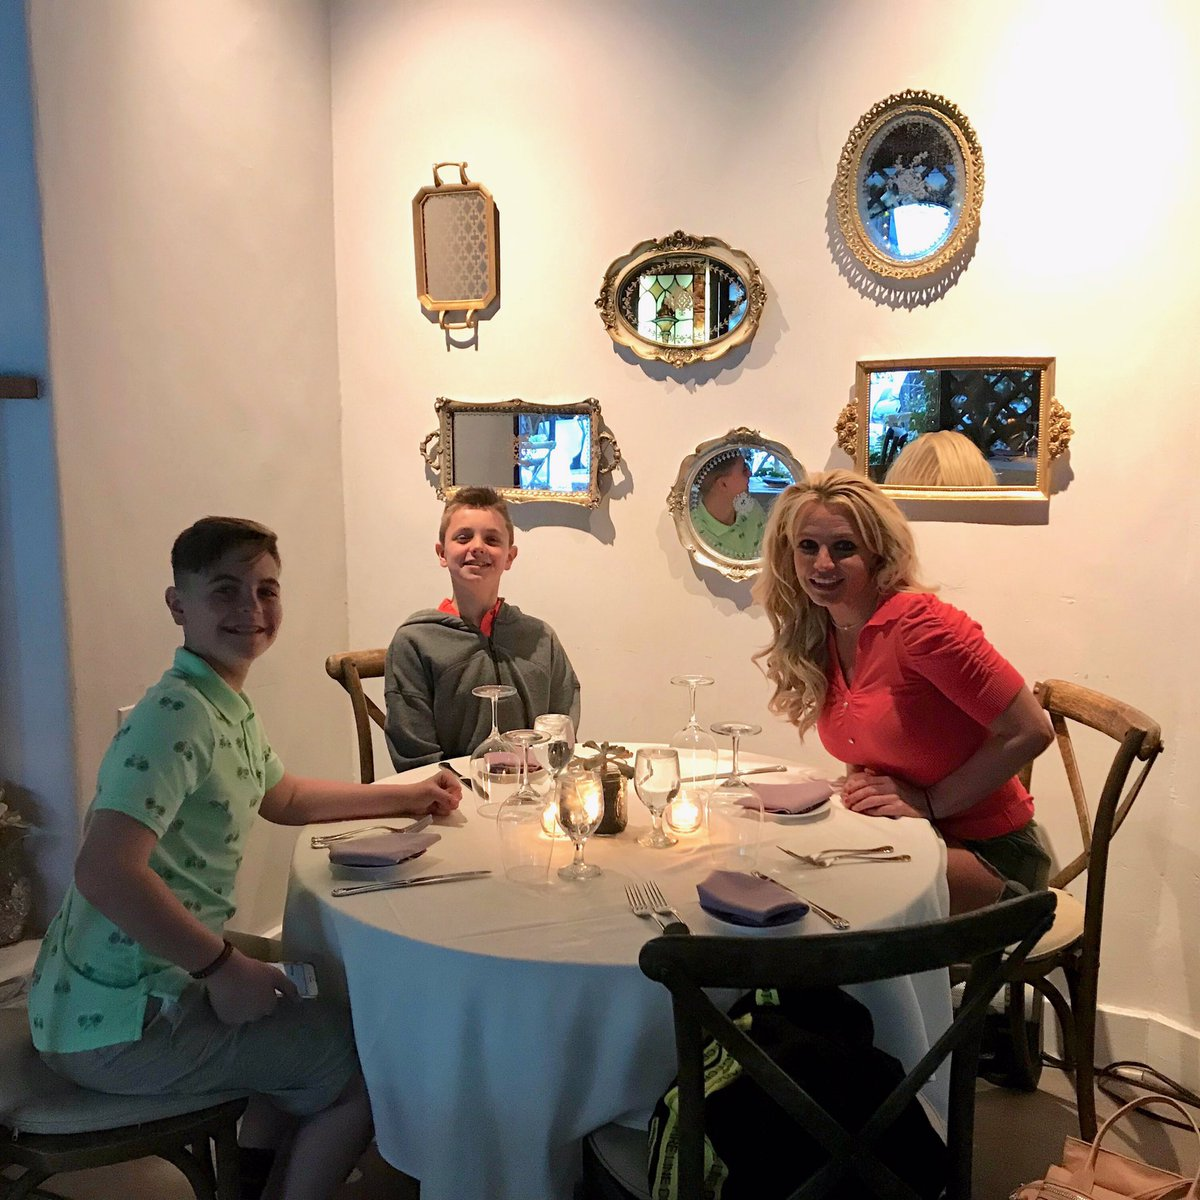 Dinner with my boys at one of our favorite spots ???????????? https://t.co/mYMAXEjTkO